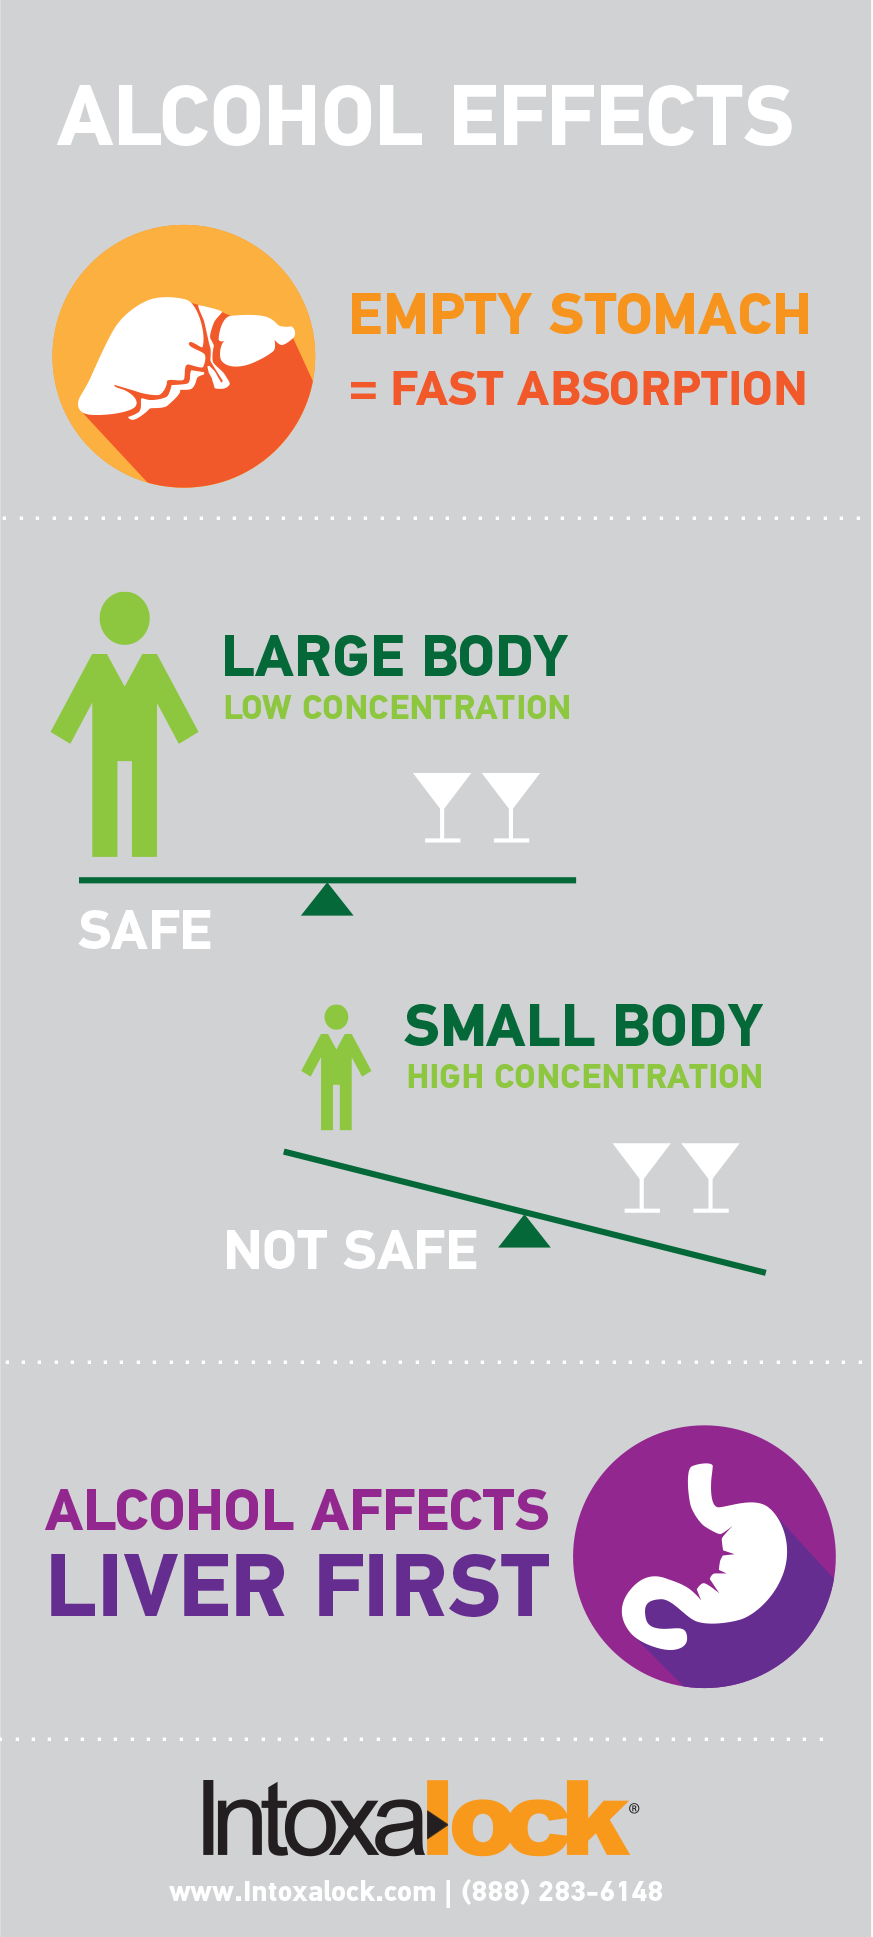 Alcohol effects infographic